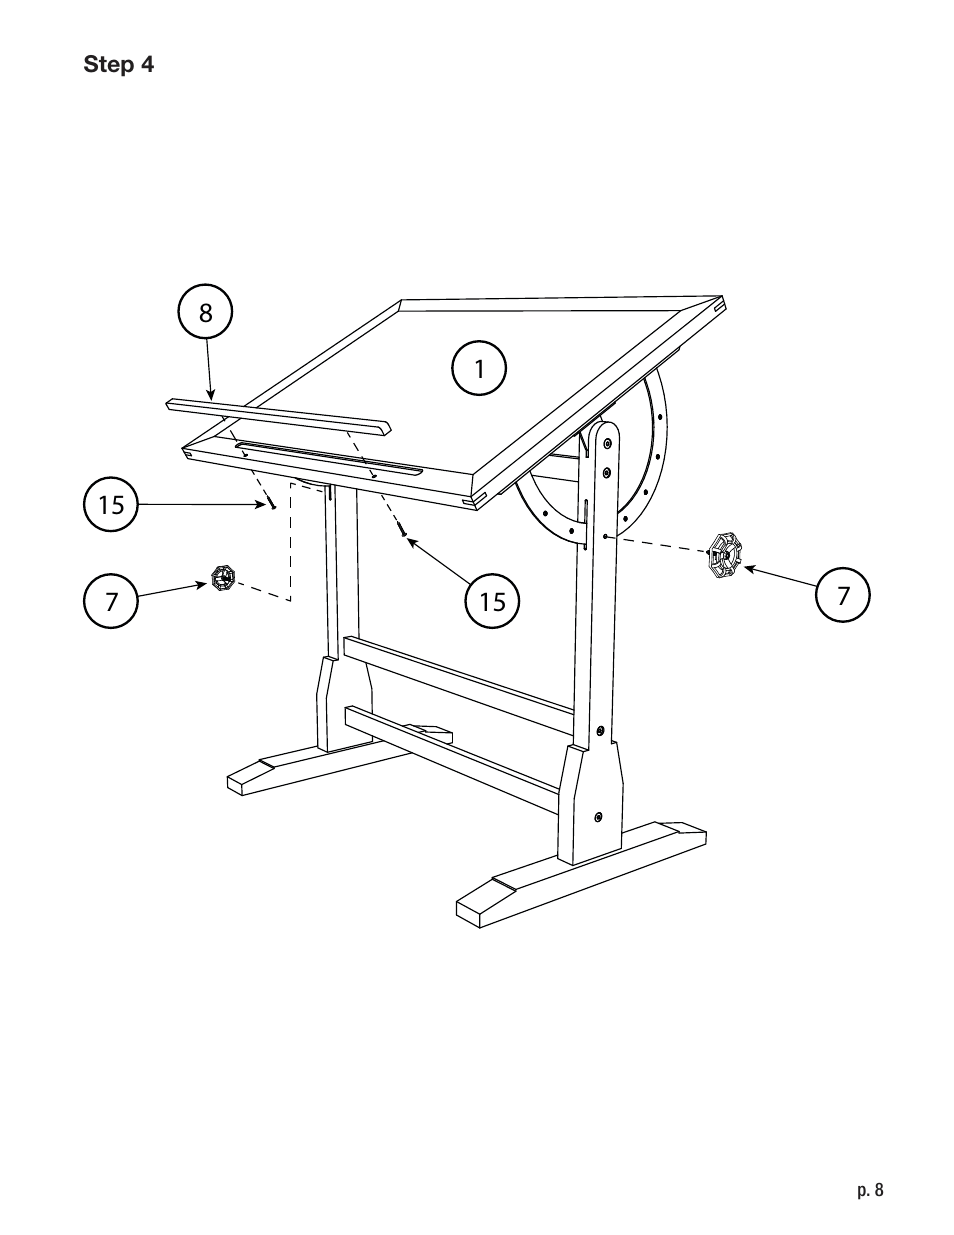 Studio Designs Vintage Drafting Table 42 inch User Manual